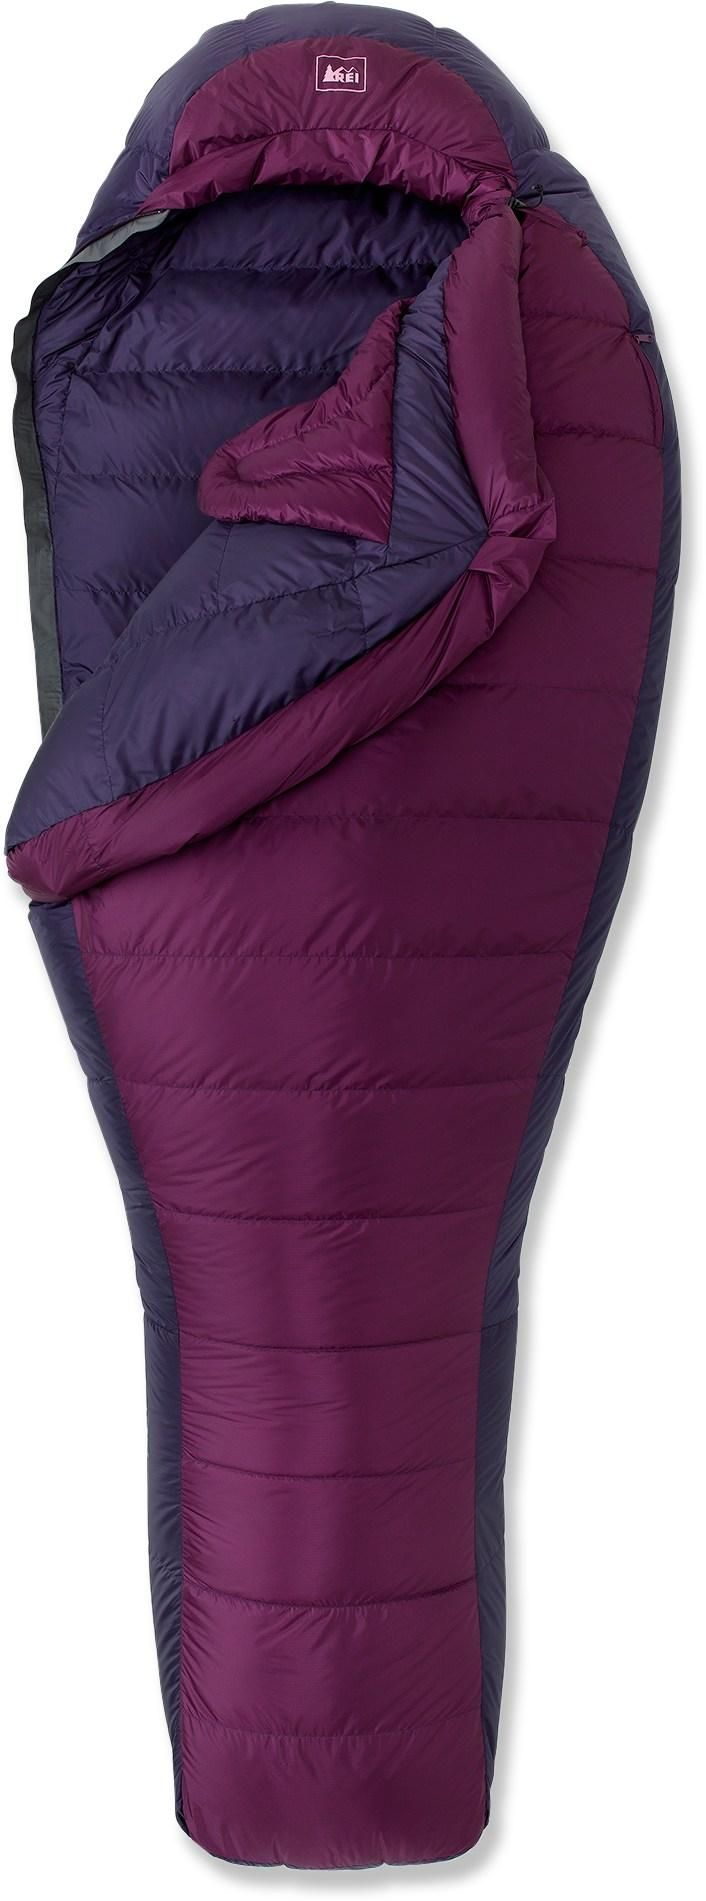 The women's REI Joule Sleeping Bag keeps you snug as a bug with 800-fill down and a waterproof, breathable shell.